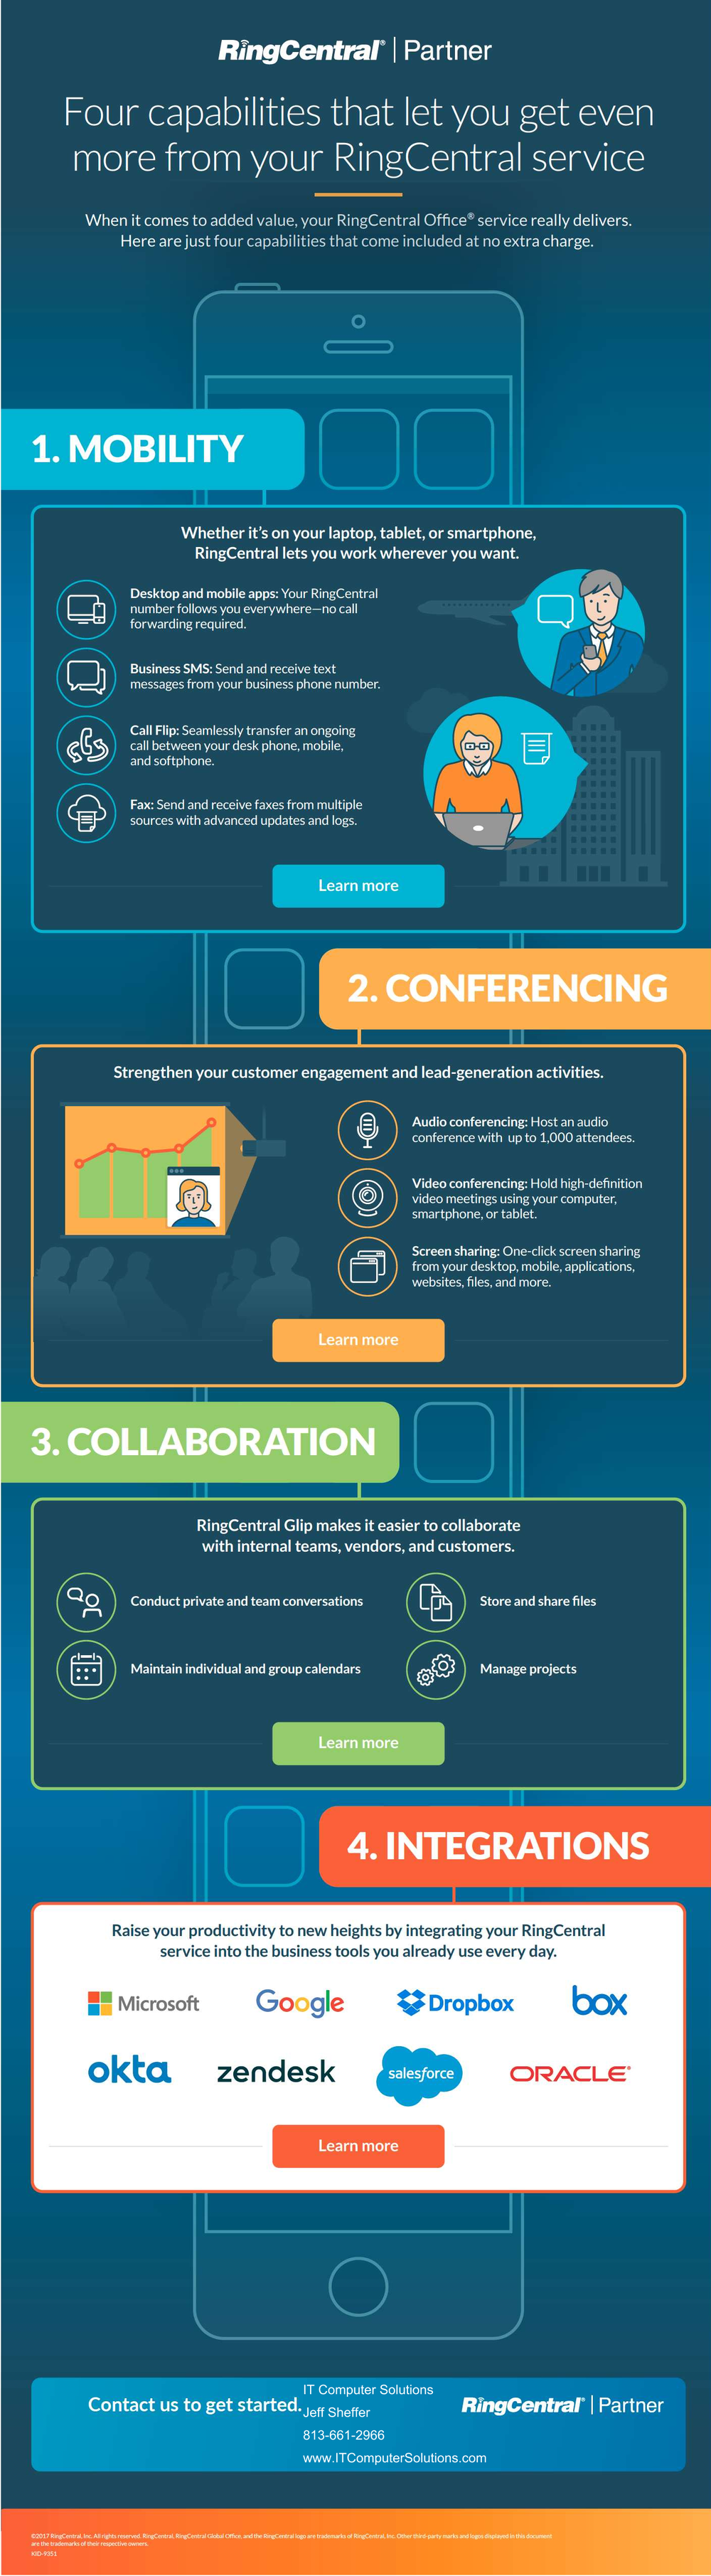 Maximizing Value infographic_page_1.png